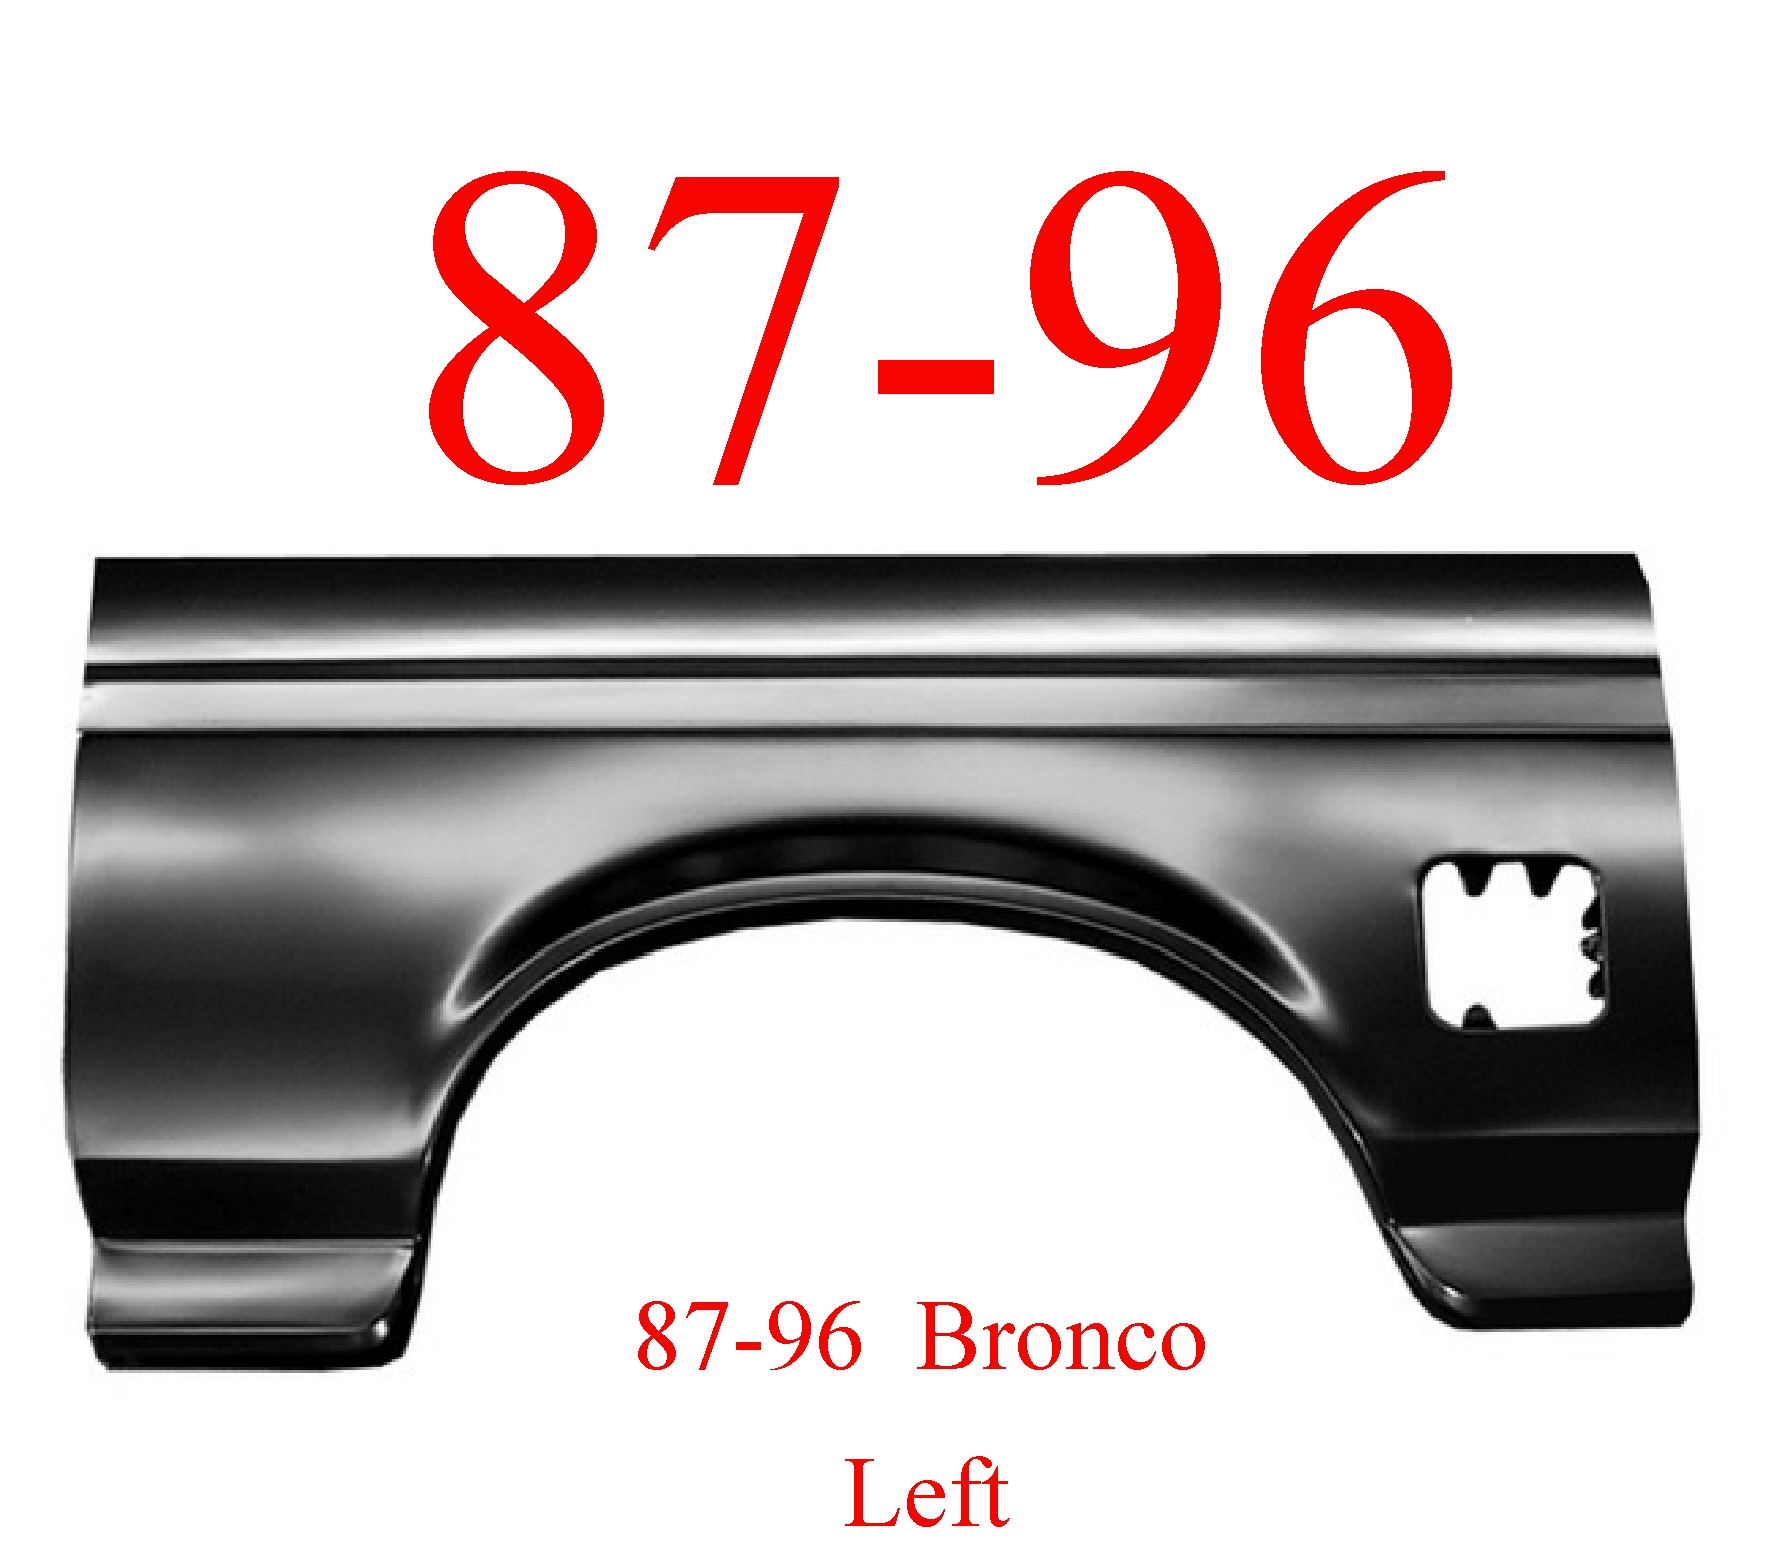 87-96 Bronco Left Full Rear Arch Panel